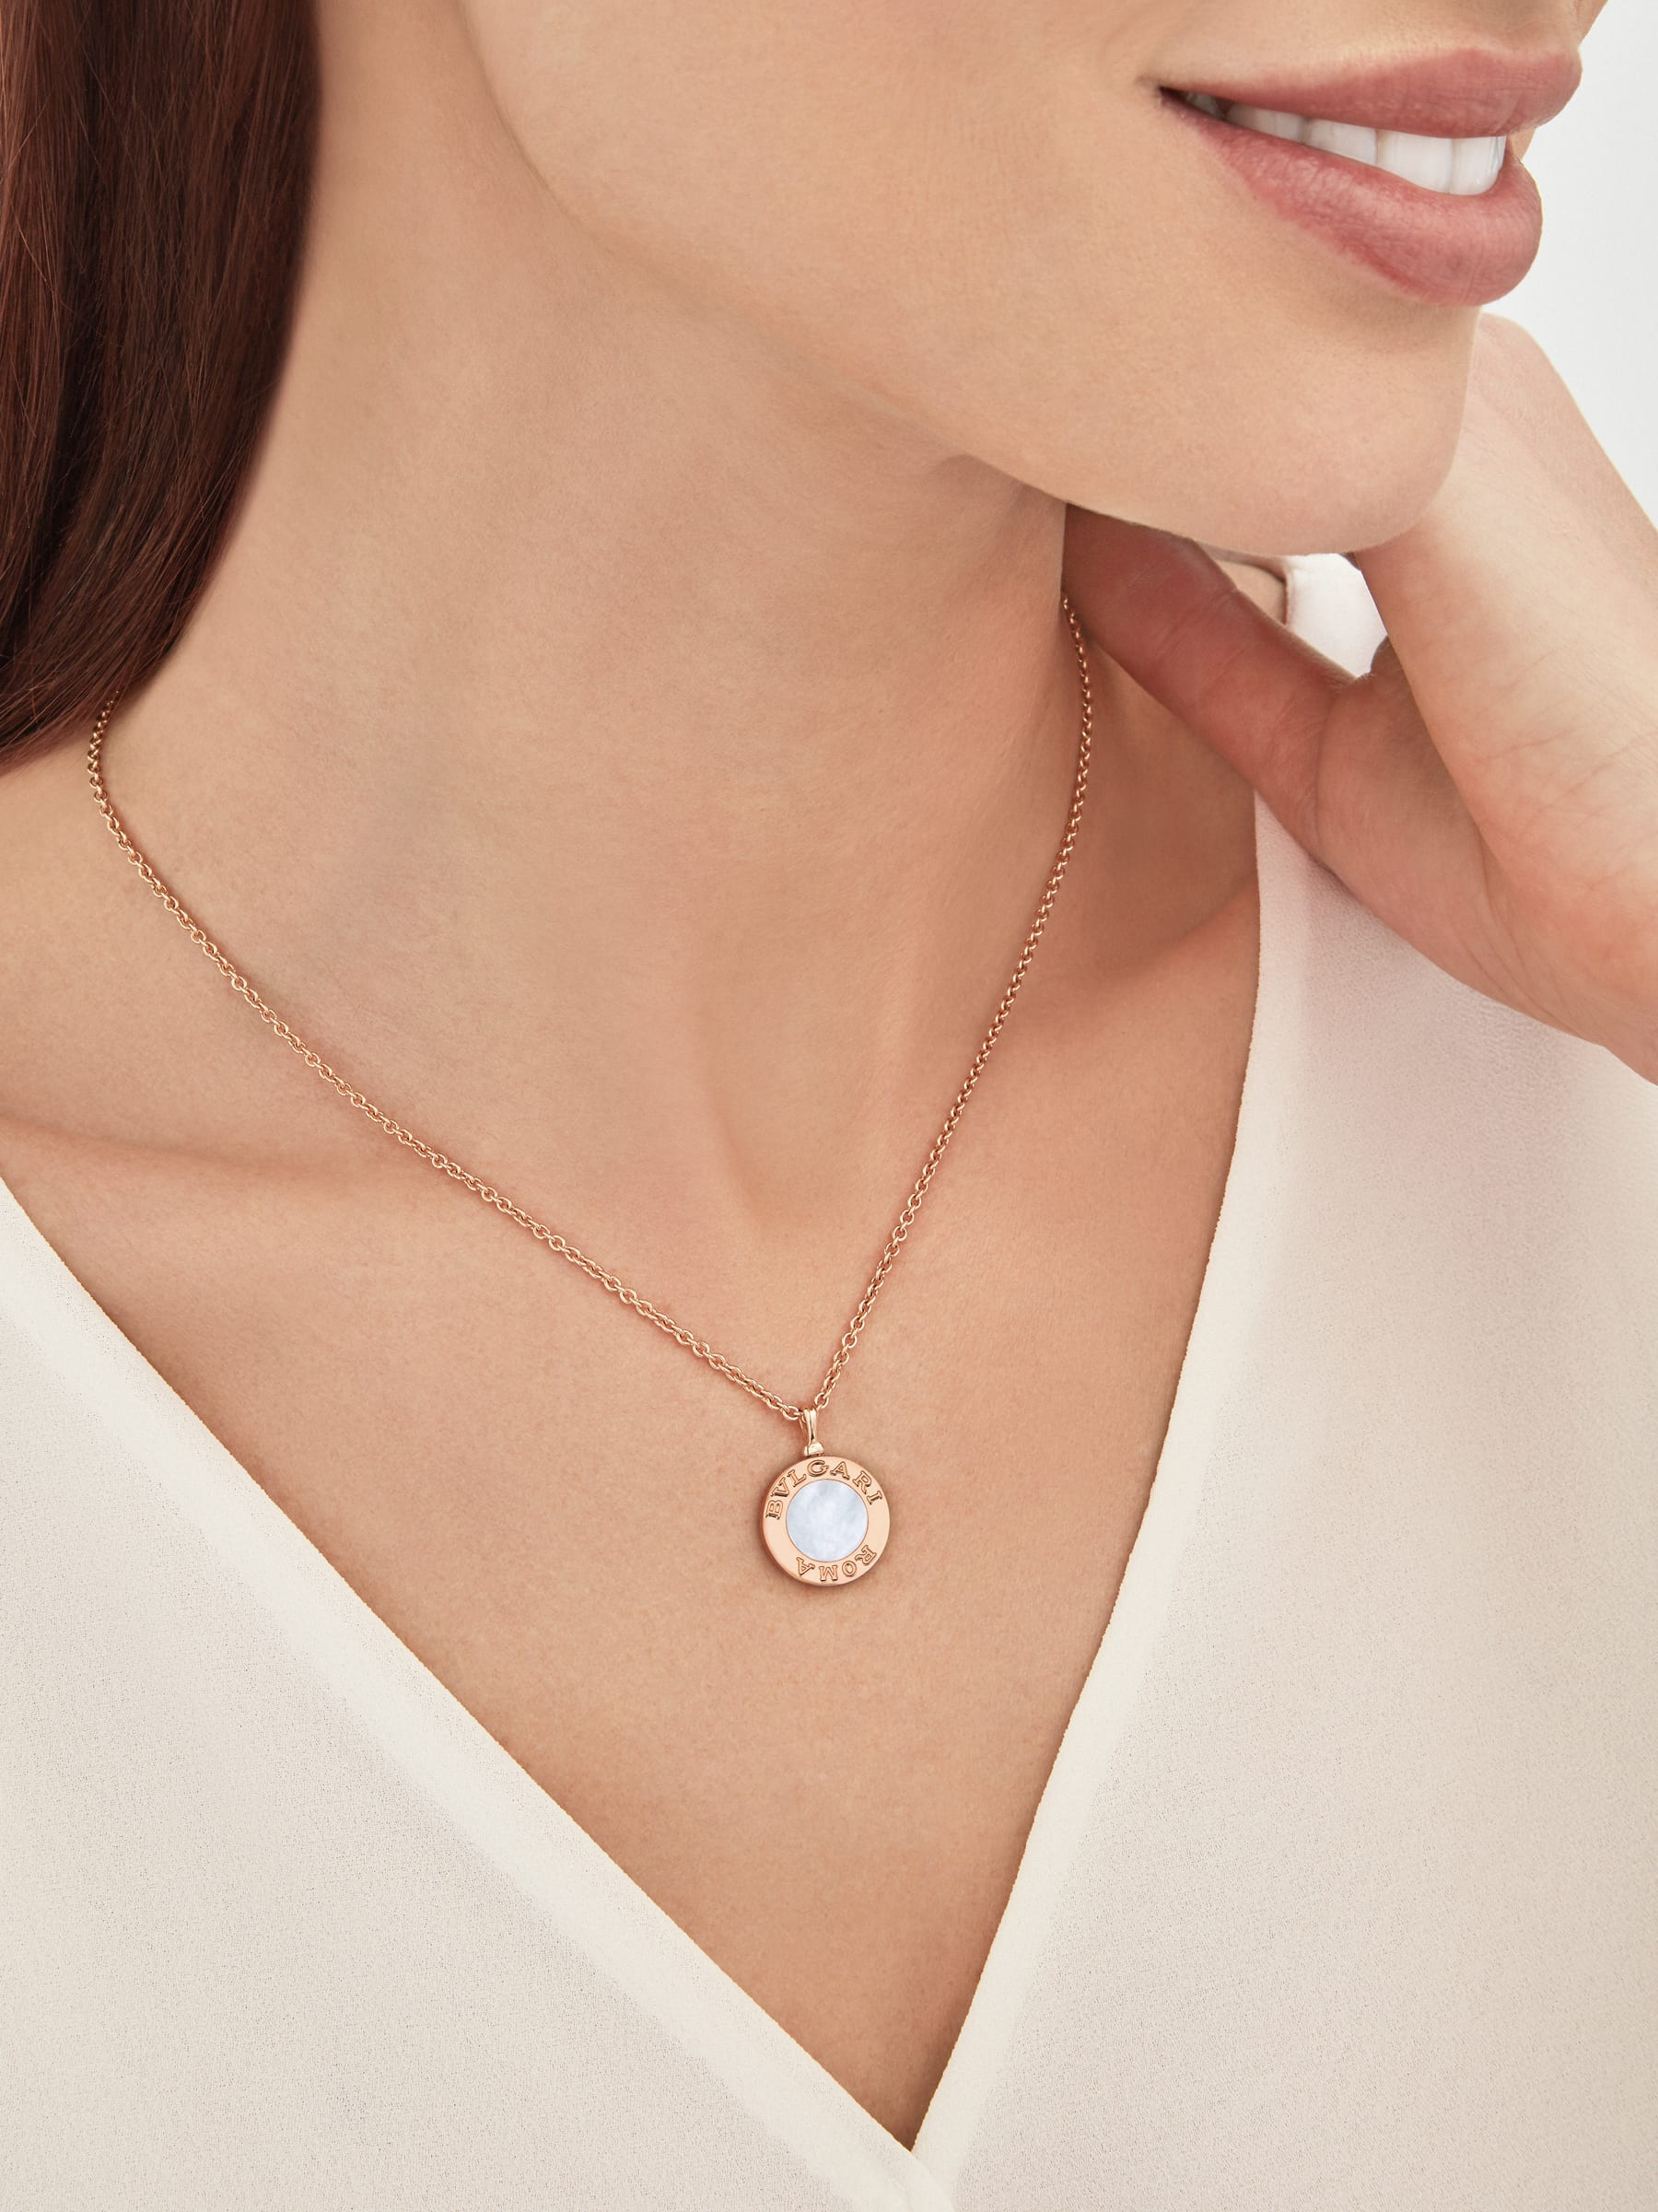 BVLGARI BVLGARI 18 kt rose gold chain and 18 kt rose gold pendant set with mother-of-pearl insert and pavé diamonds (0.34 ct) 358375 image 5